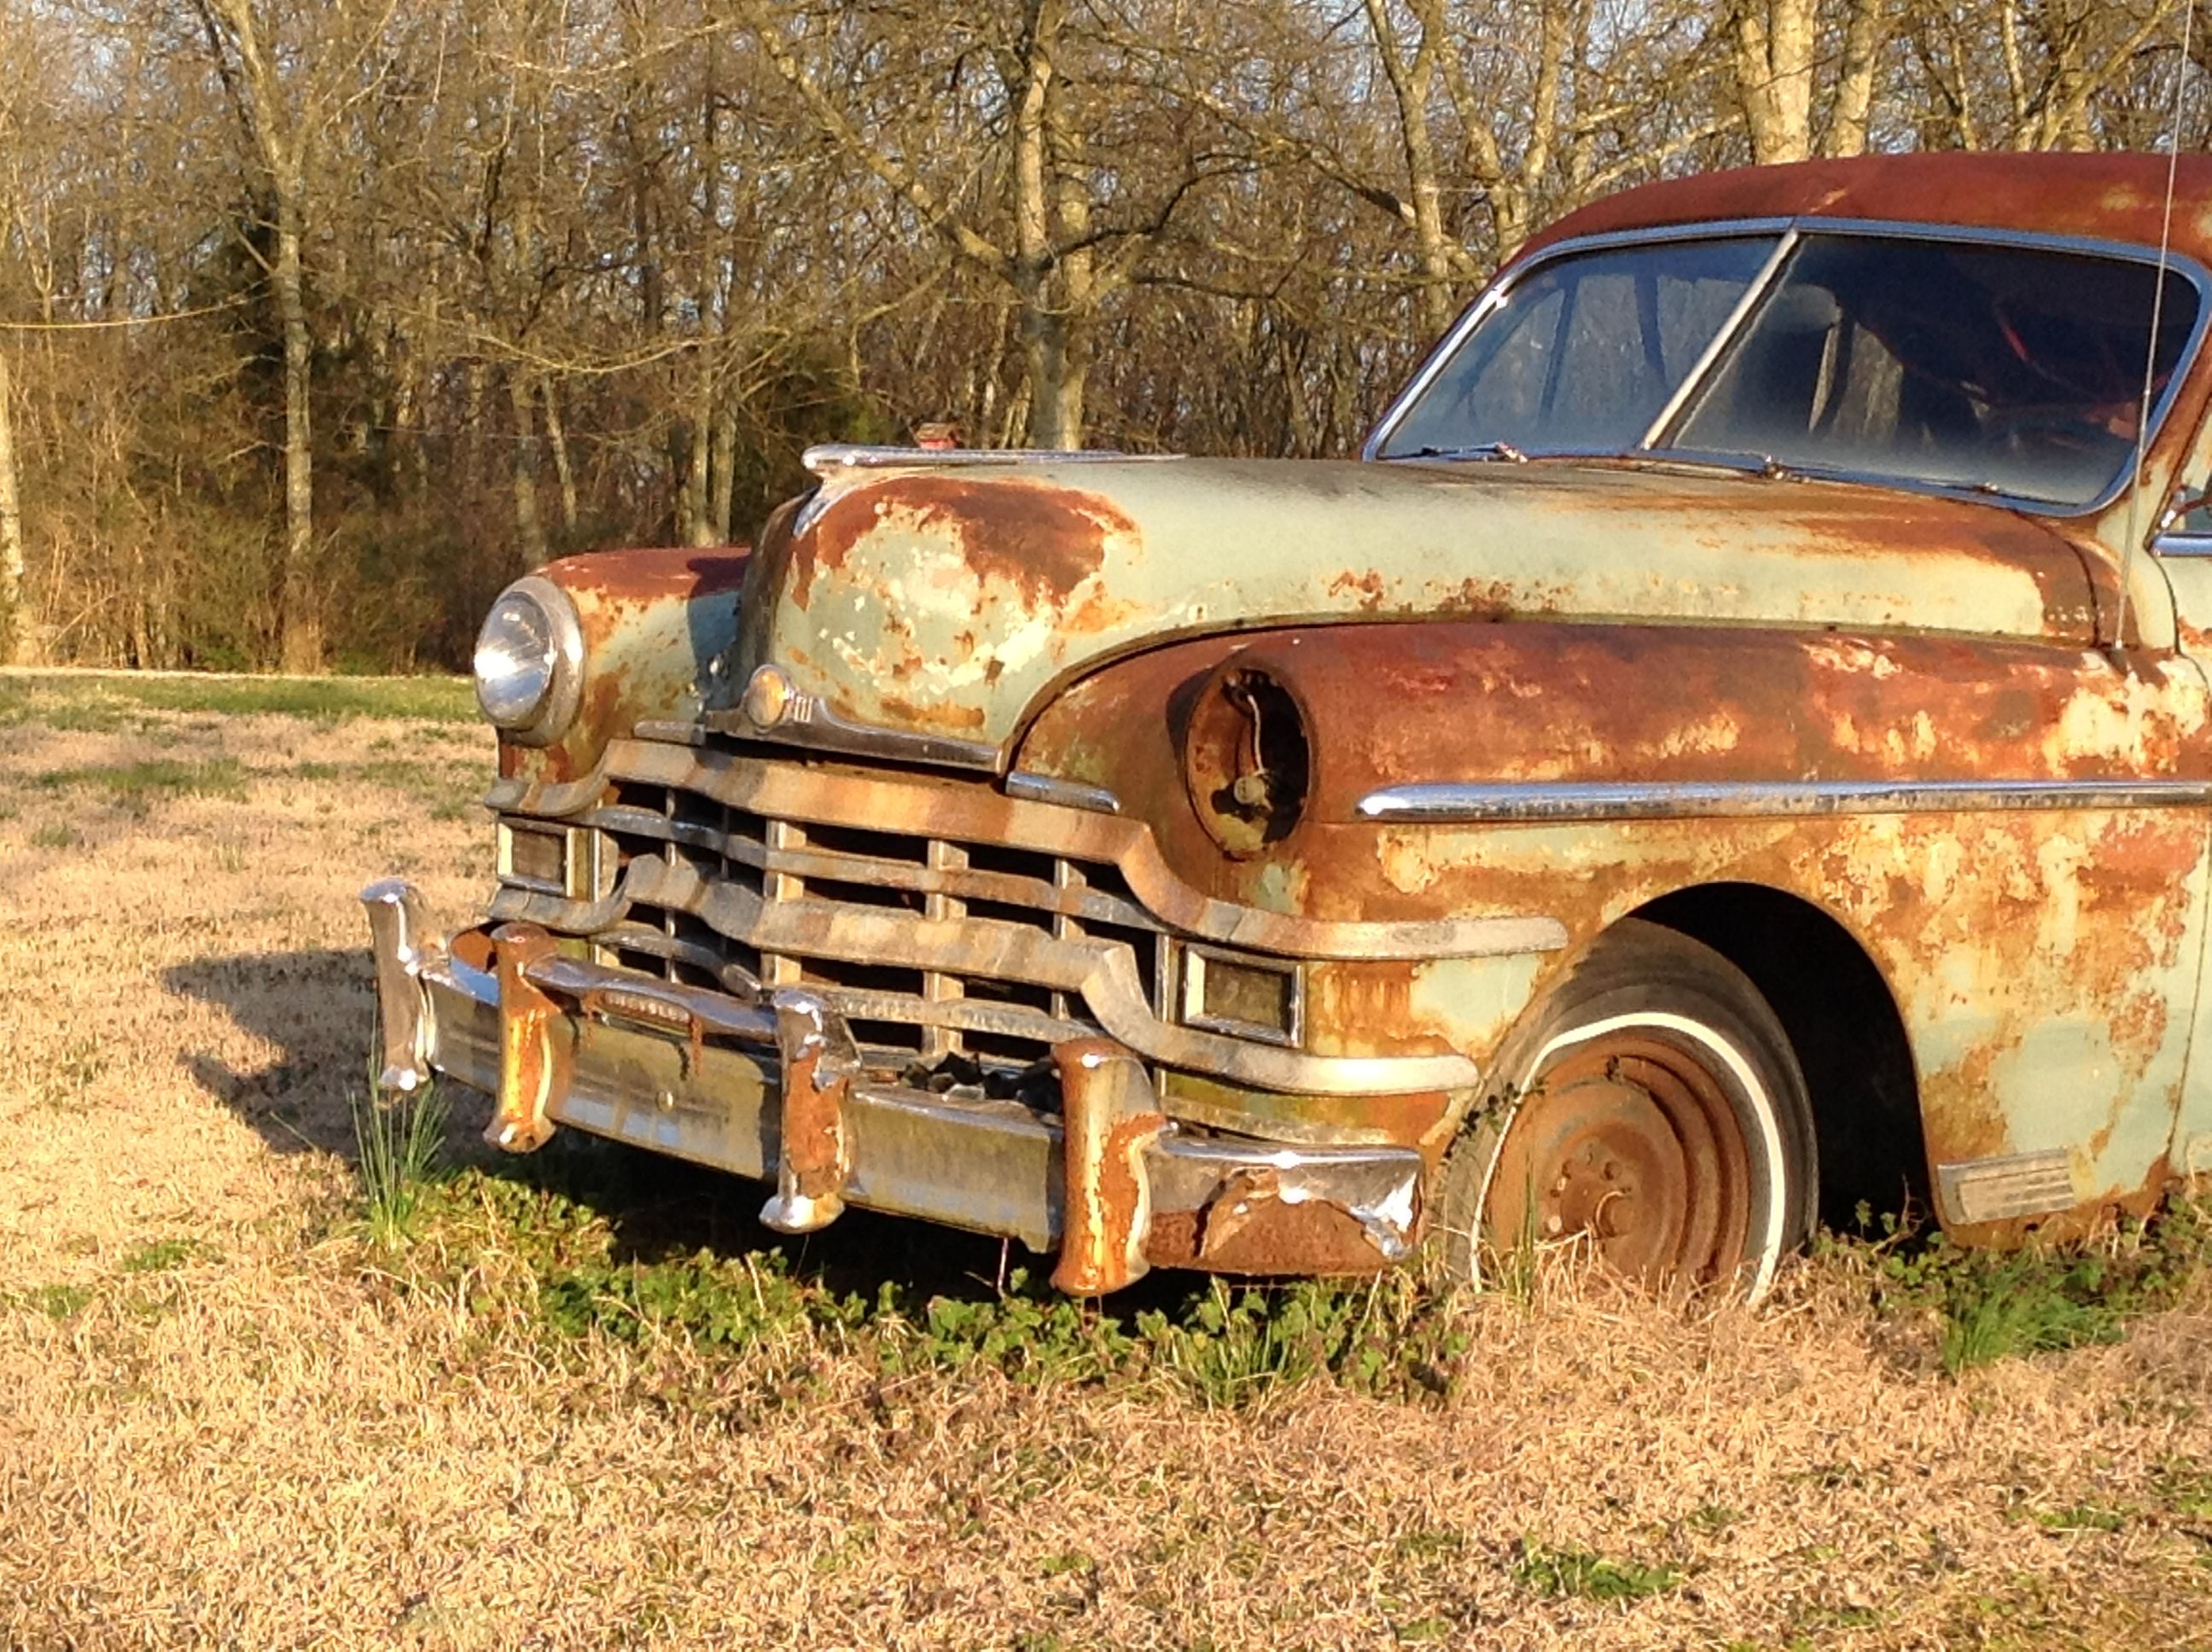 Old car in Tennessee | Rusty trucks & cars | Pinterest | Cars